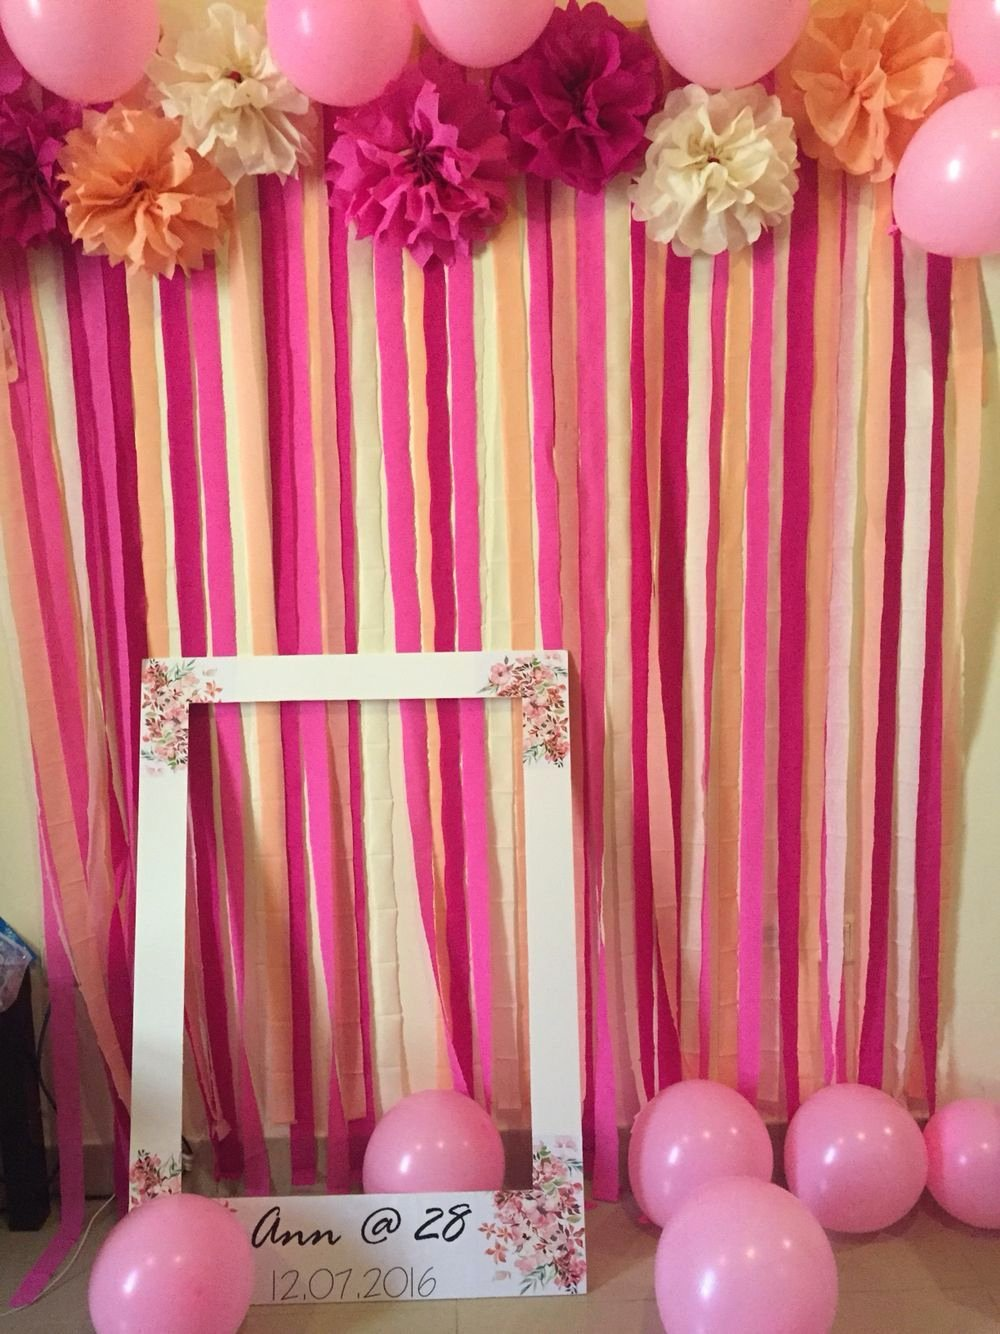 28th Birthday Decoration Ideas Fresh 30 Diy Birthday Decoration Ideas